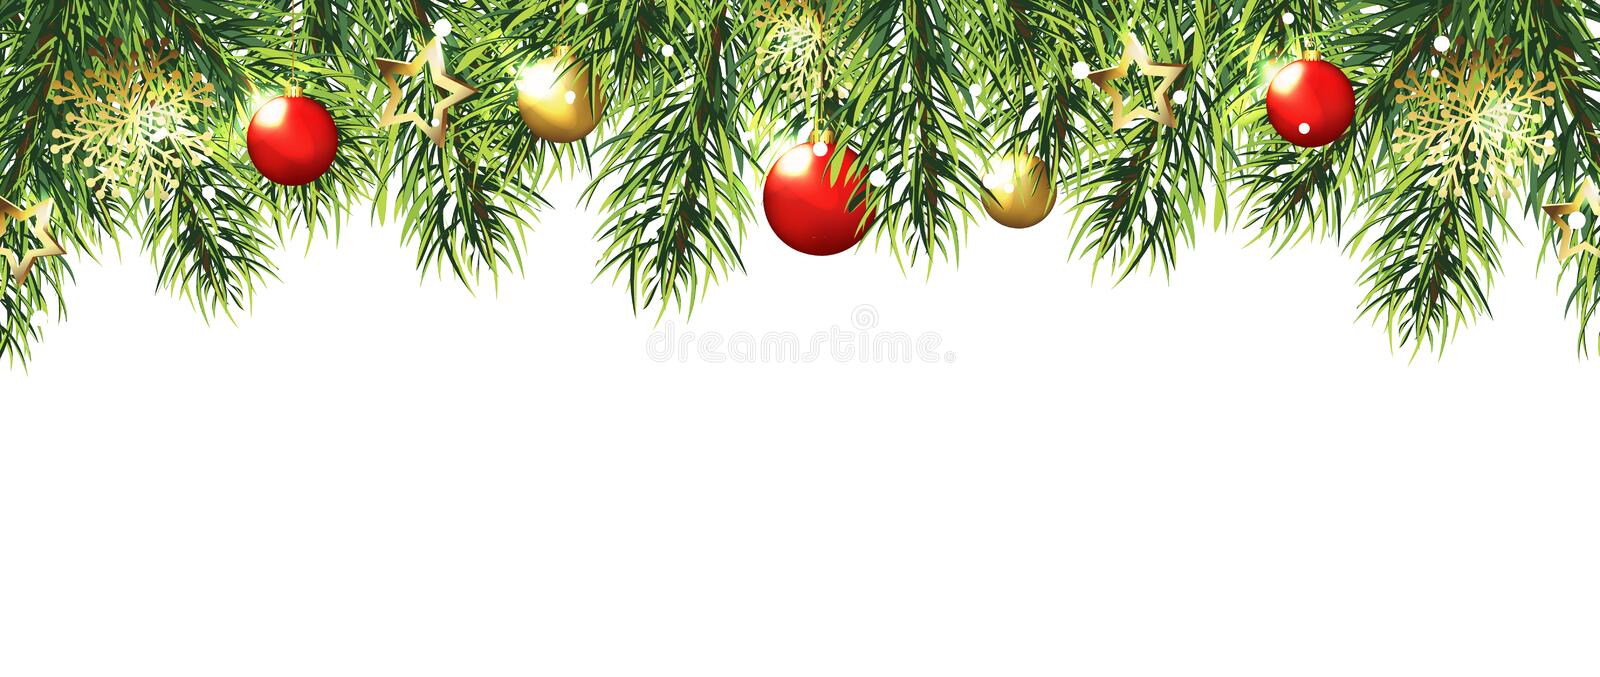 Christmas border with trees, red and gold balls and stars isolated on white background. vector illustration